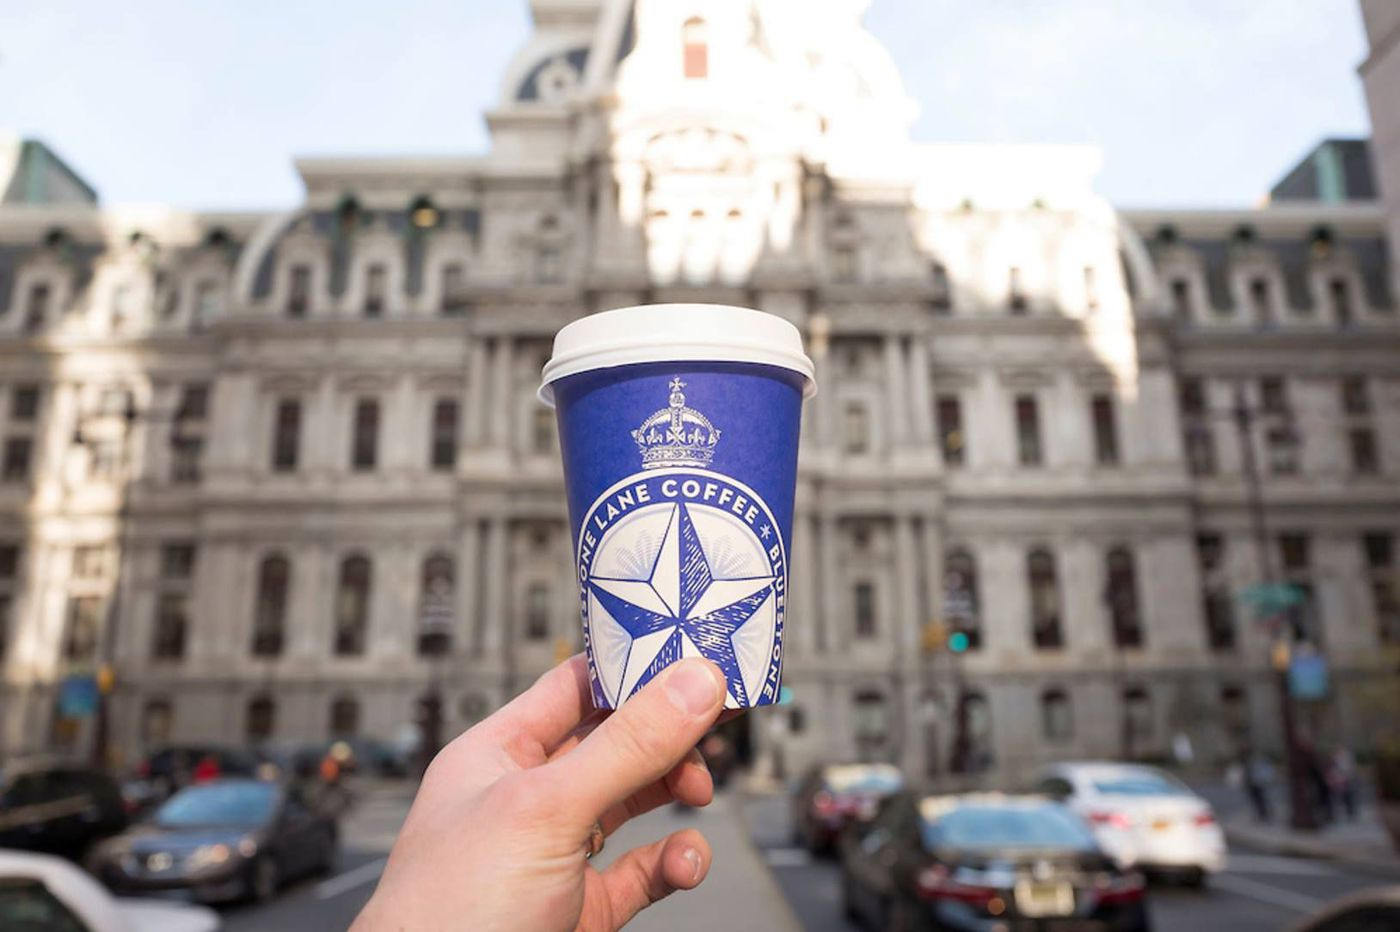 Philadelphia takes a step closer to banning cashless stores in the city